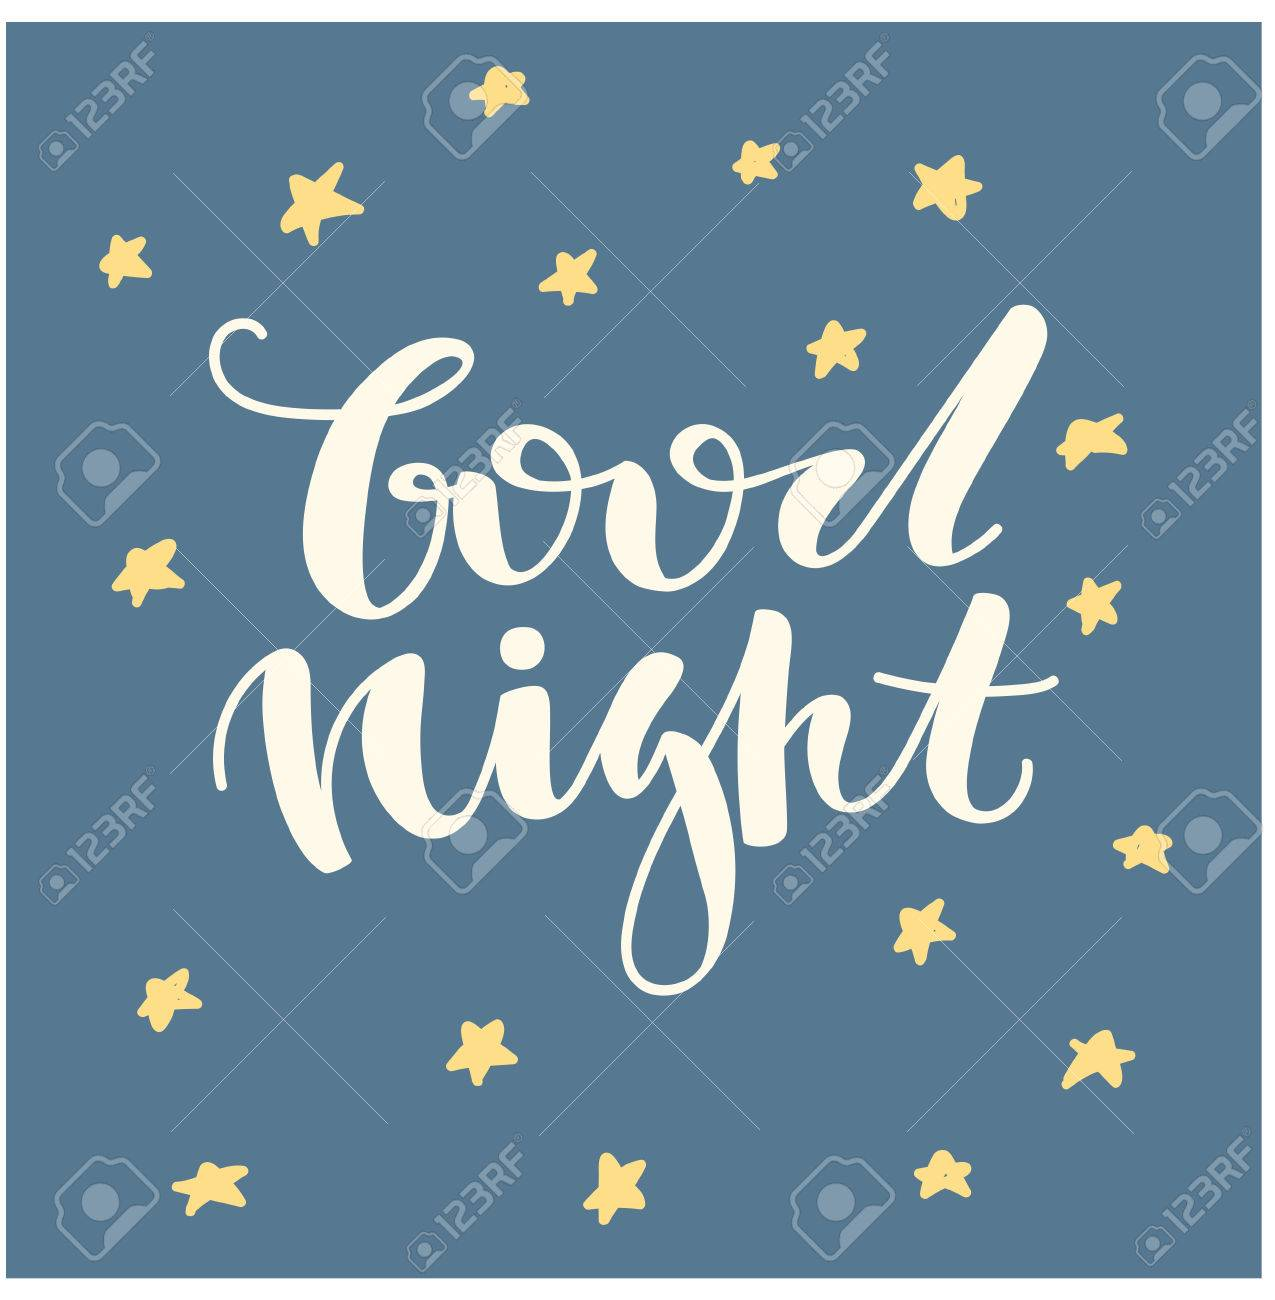 Good Night Hand Written Lettering Cute Hand Drawn Letters Royalty